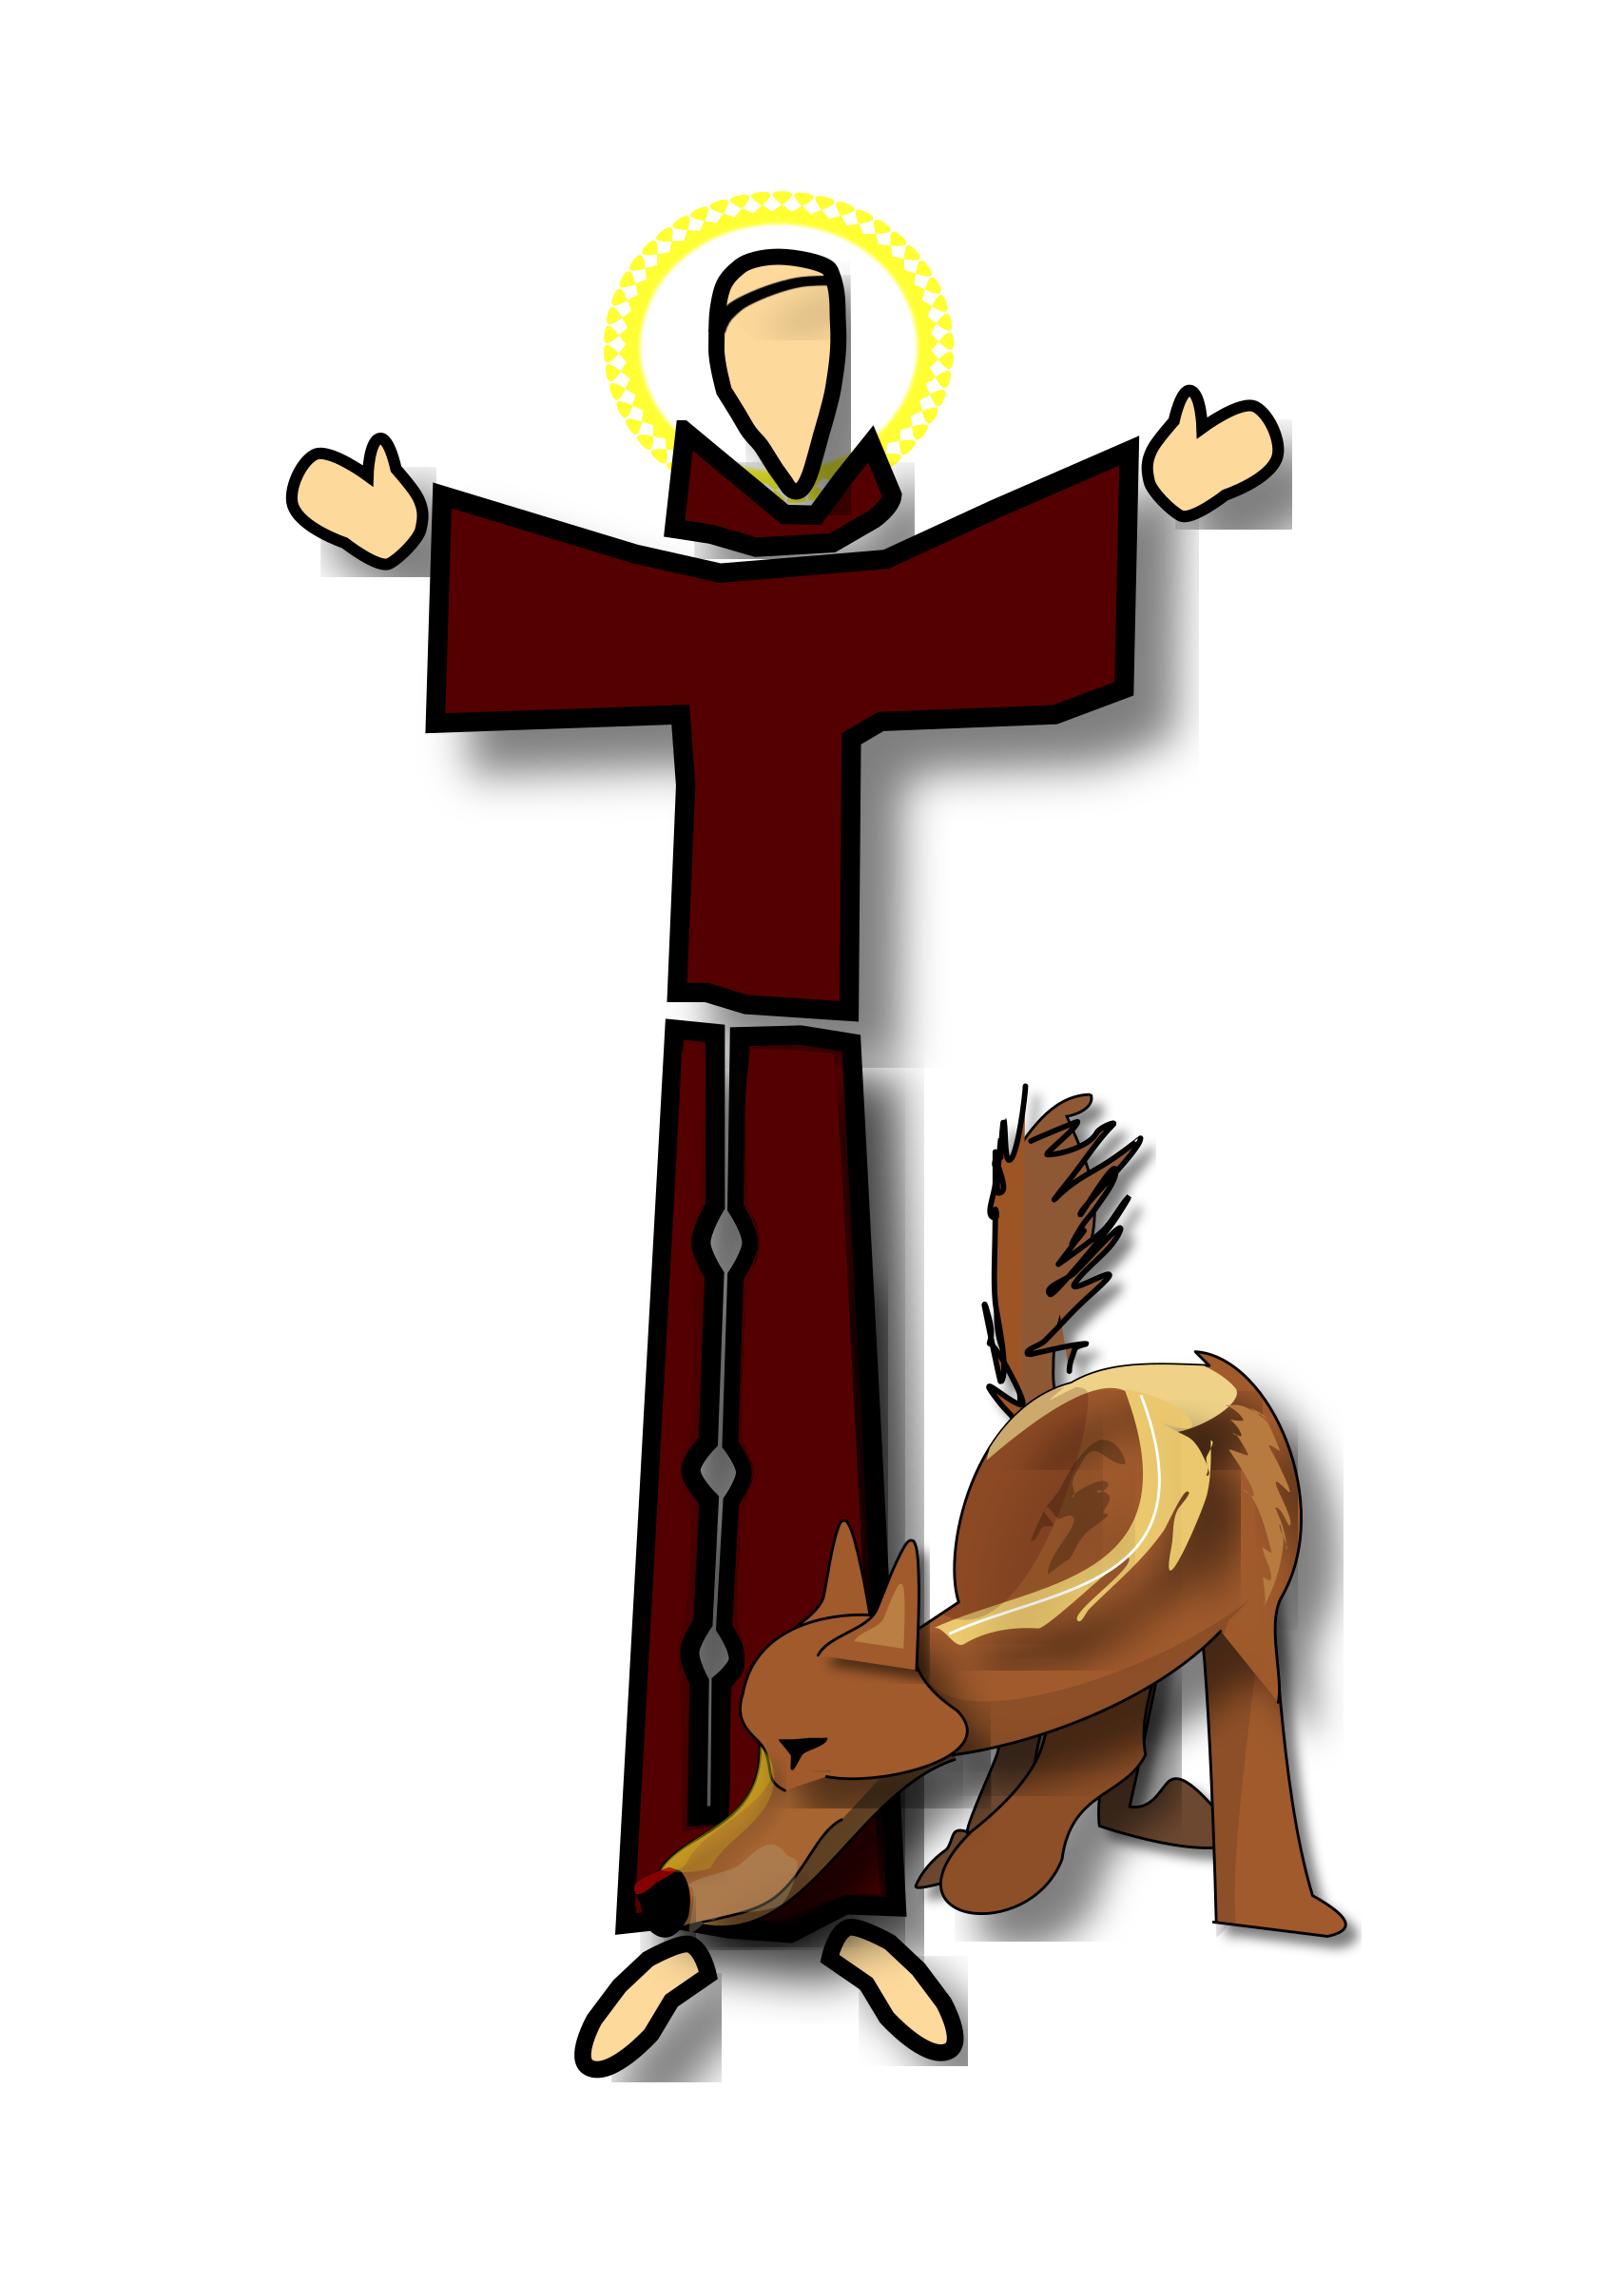 Saint Francis Clipart at GetDrawings.com | Free for personal use ...